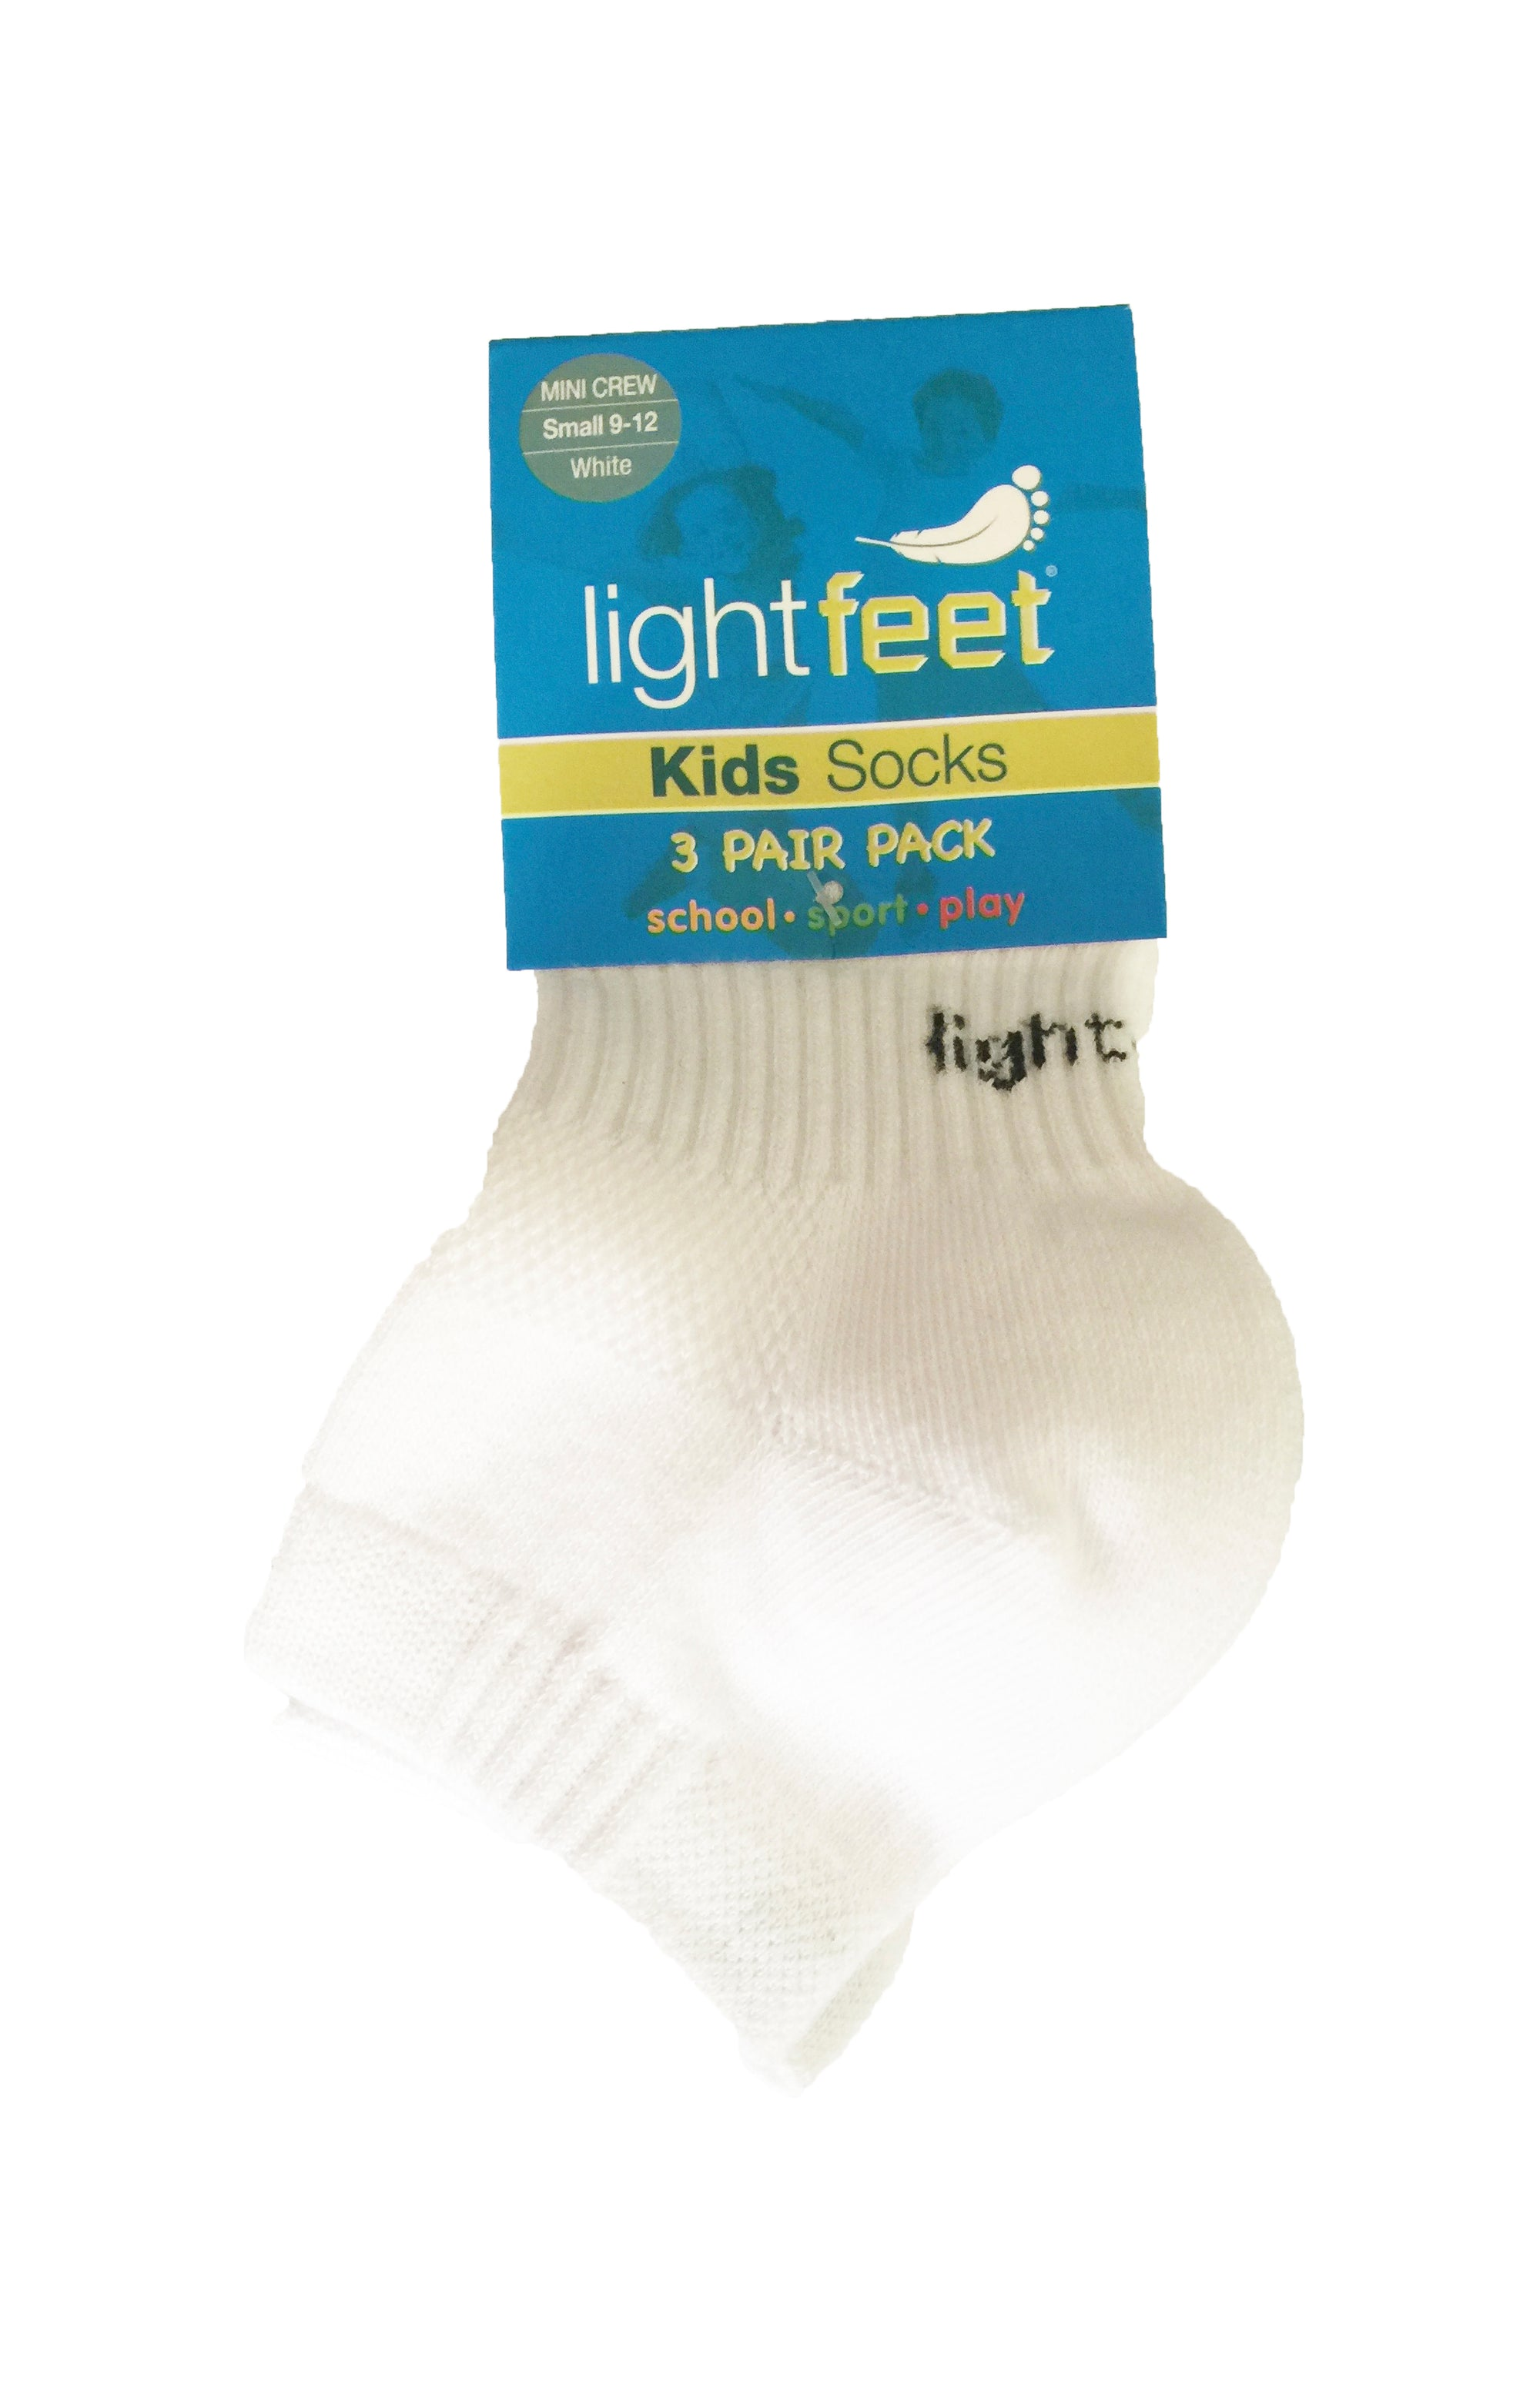 Lightfeet Kids School Socks 3 Pack (Mini-Crew) - White